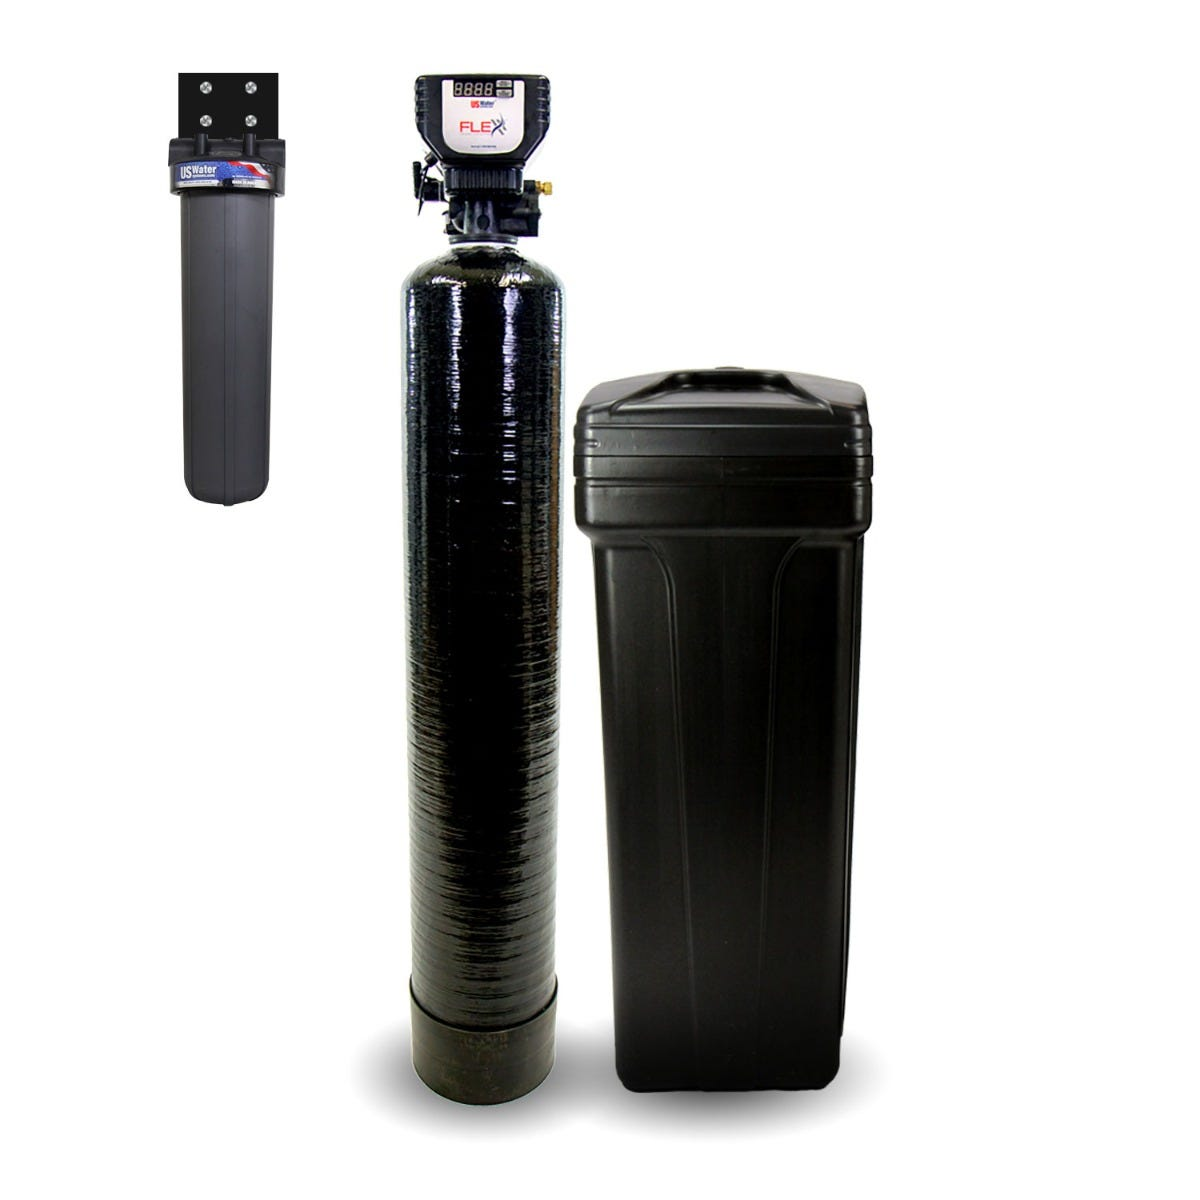 Flex High-Performance Metered Compact Water Softener-Flex-24